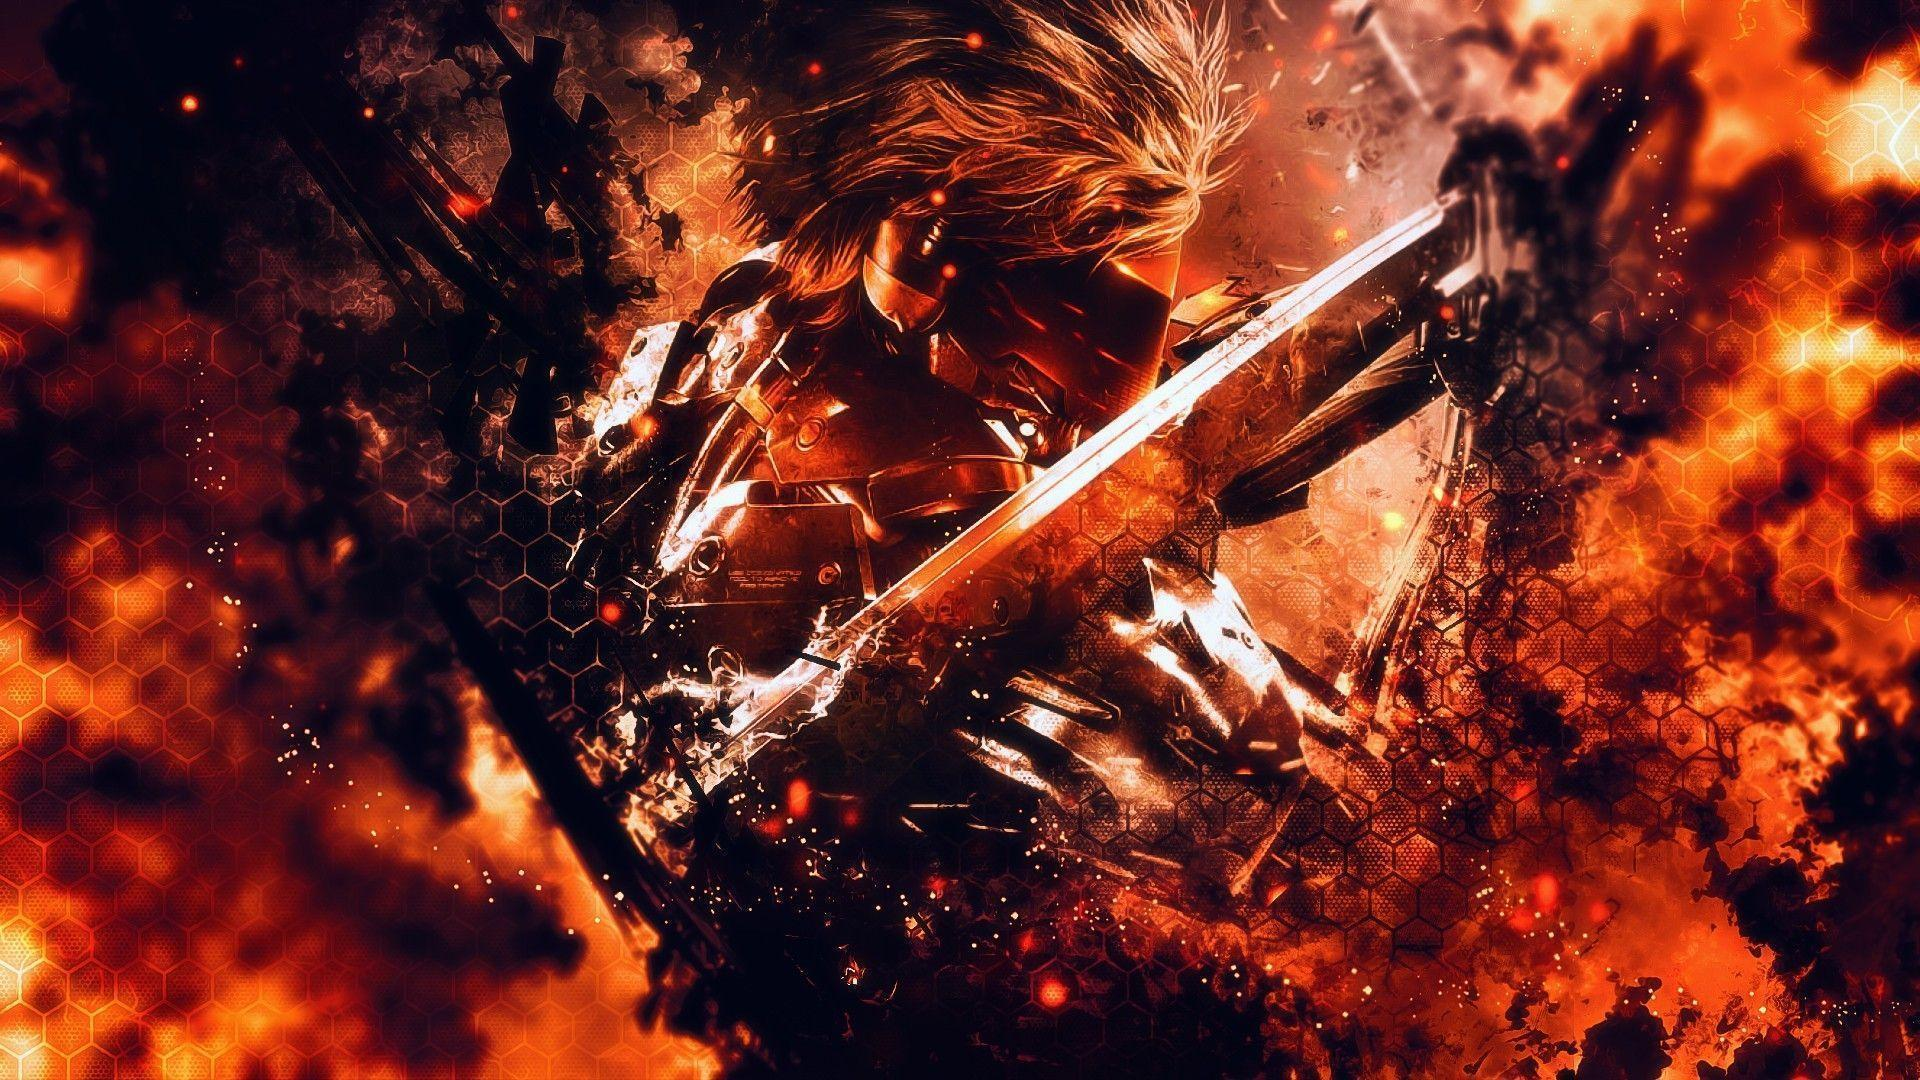 Flames Raiden Metal Gear Rising Revengeance Mgr Wallpapers Mixhd